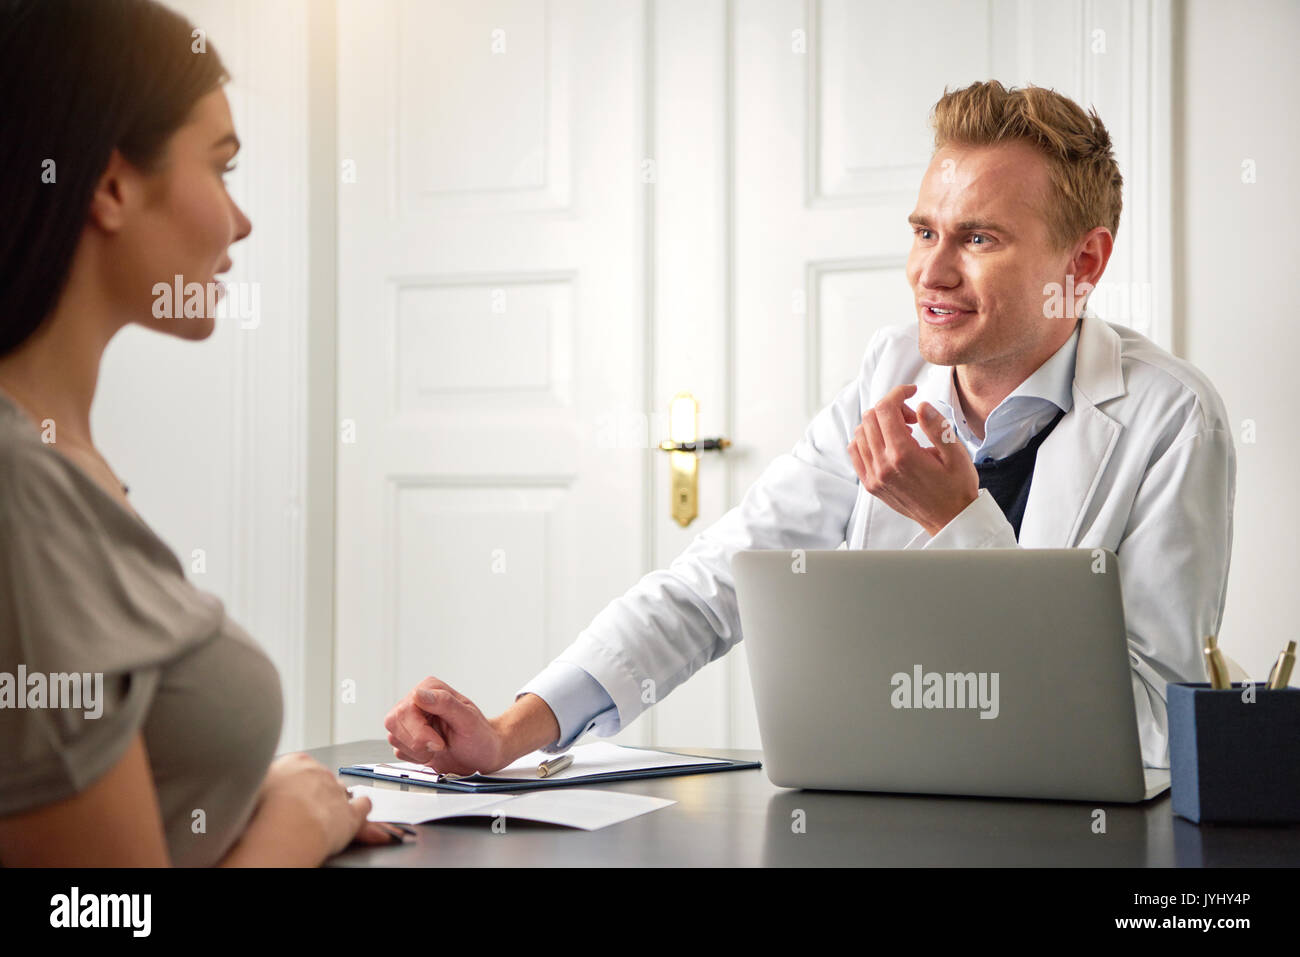 Spa And Beauty Specialist Man Sitting At Computer And Giving A Stock Photo Alamy